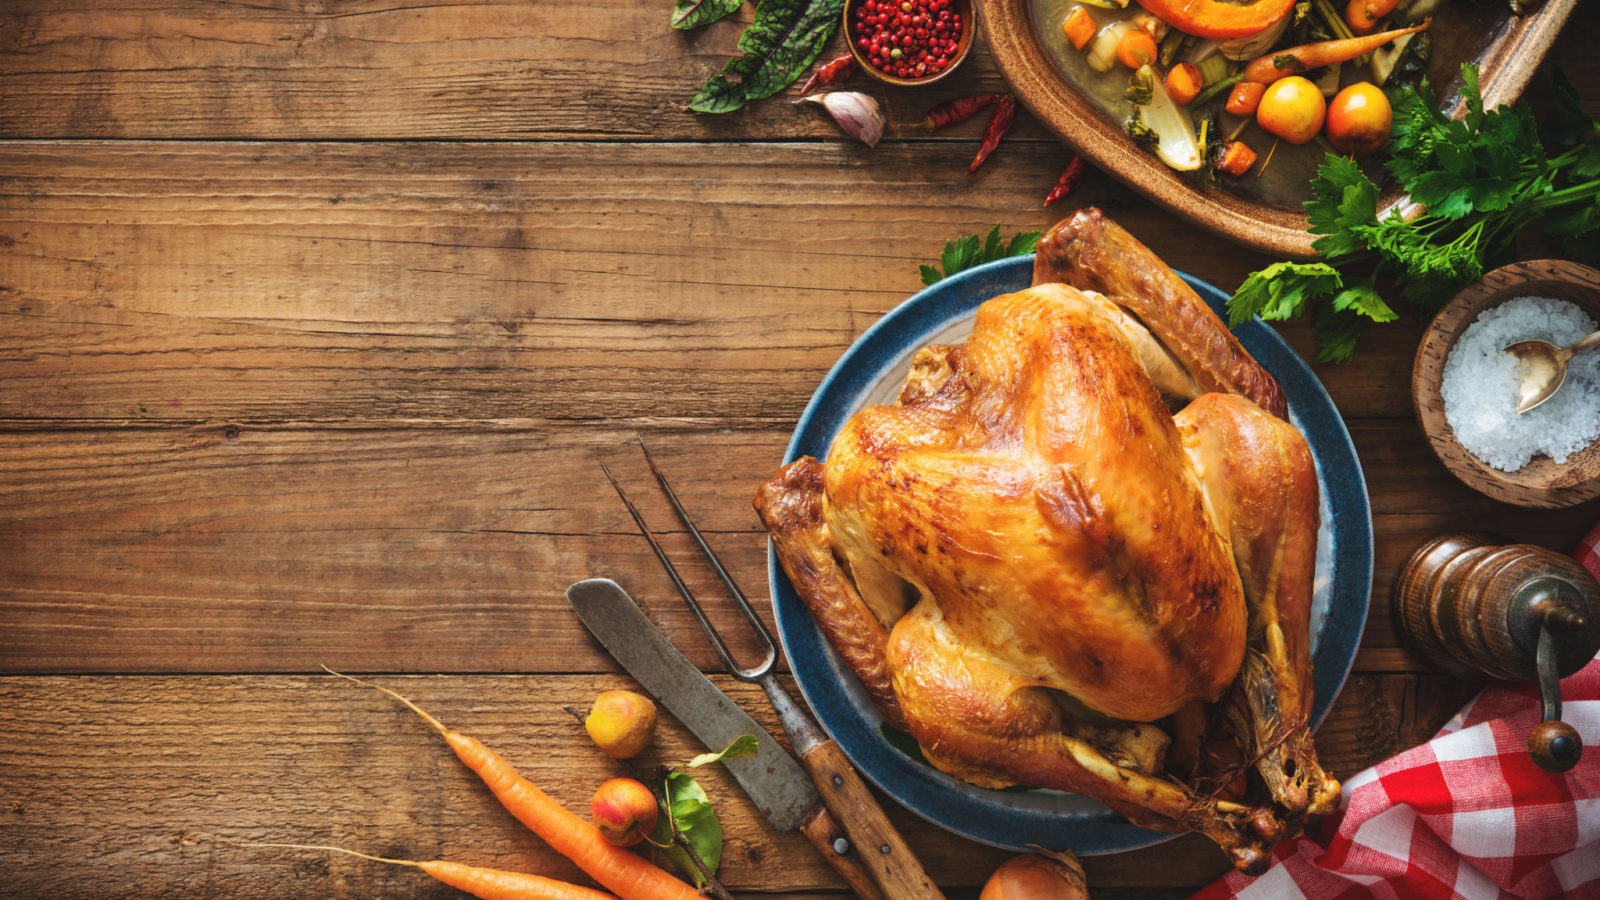 5 Ways to Stay Motivated to Healthy Eating During Holidays 1